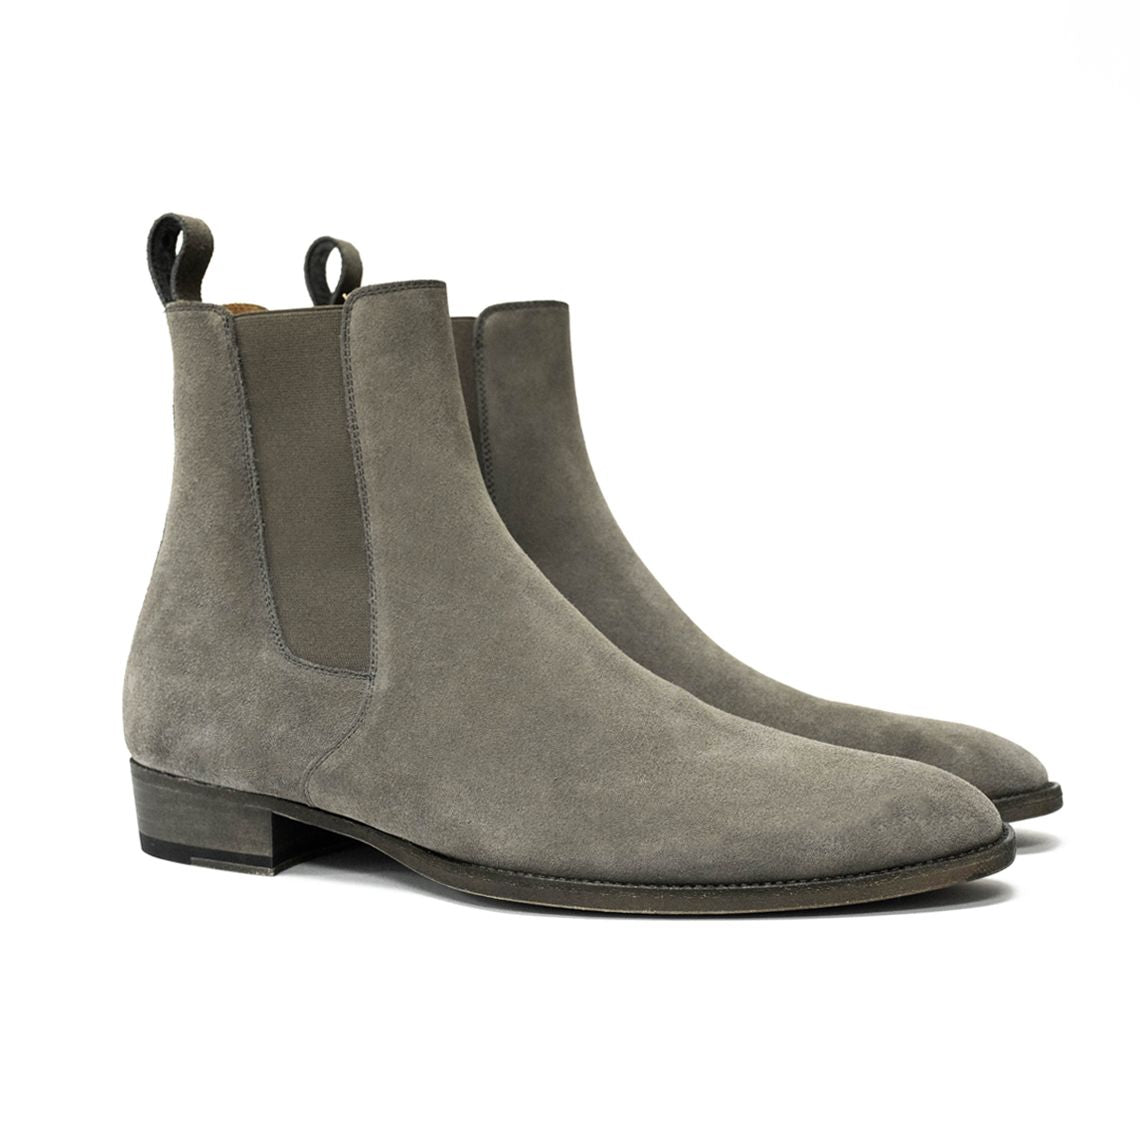 THE WOLF GREY GRANADA CHELSEA BOOTS